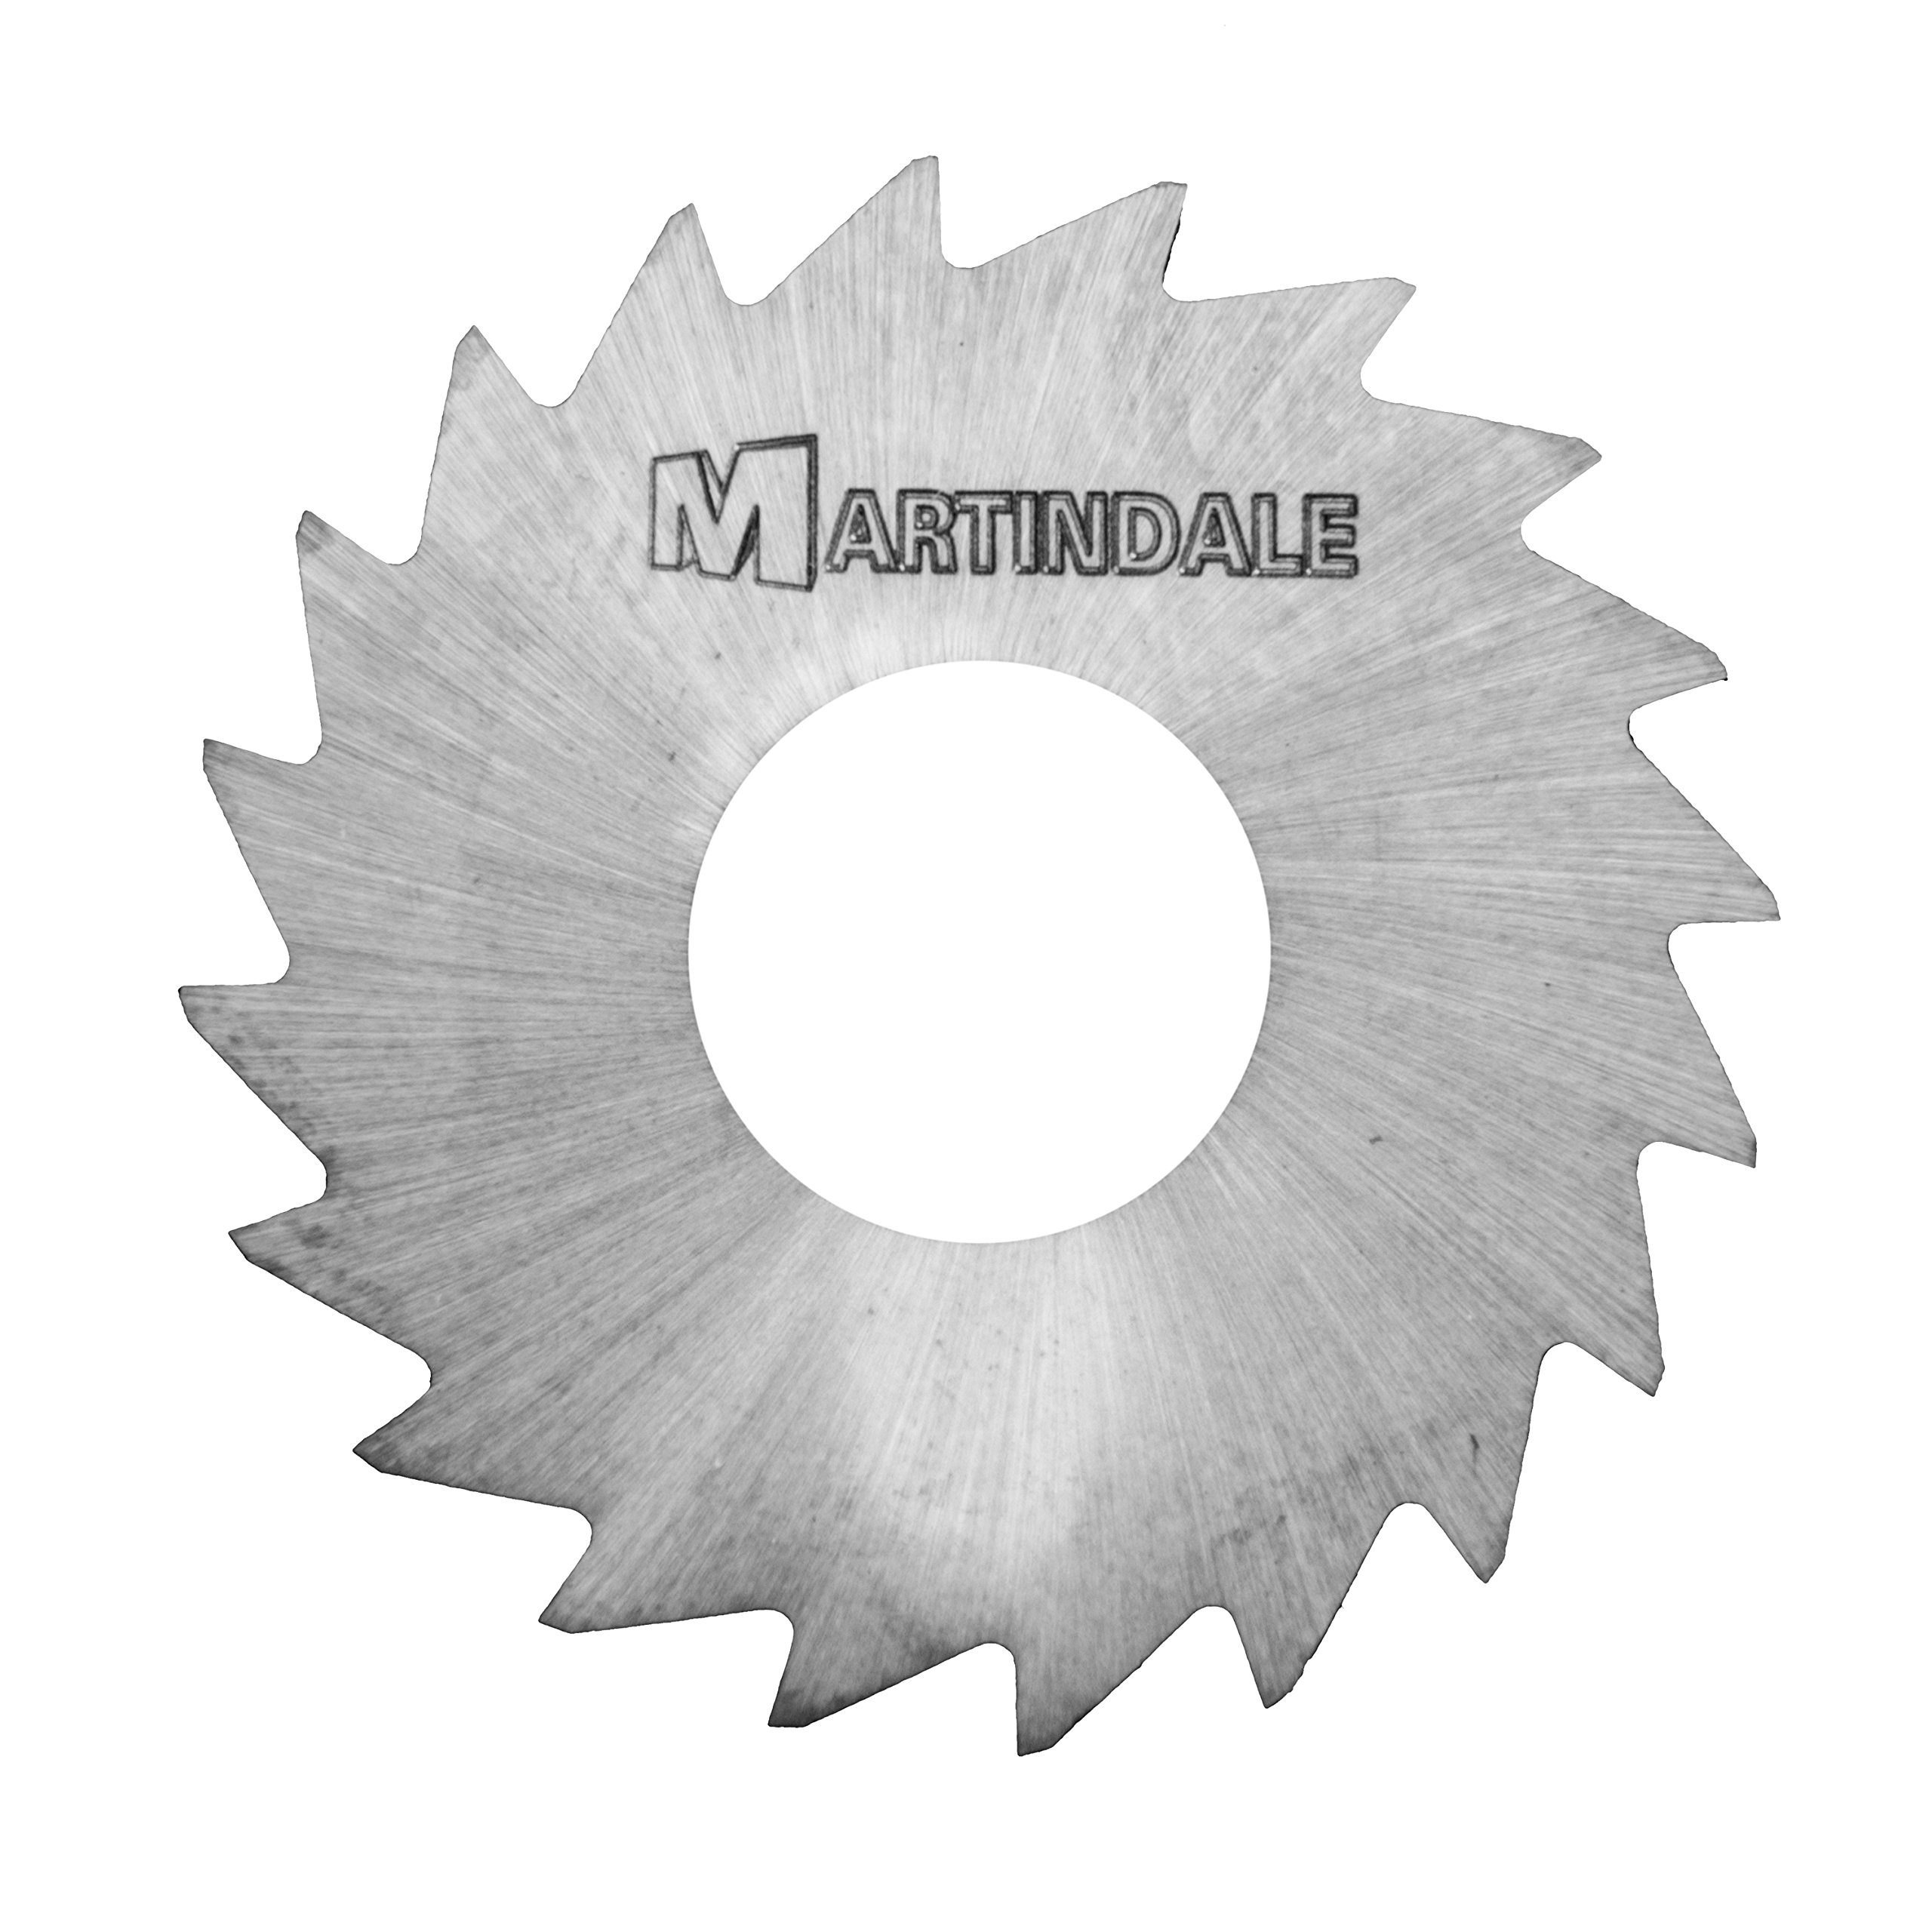 Martindale TUNS105047 Tungsten-Carbide Tungsten-Carbide Saws,  1-1/4'' Outer Diameter,  5/16'' Hole Diameter,  0.047'' Thick,  24 Teeth